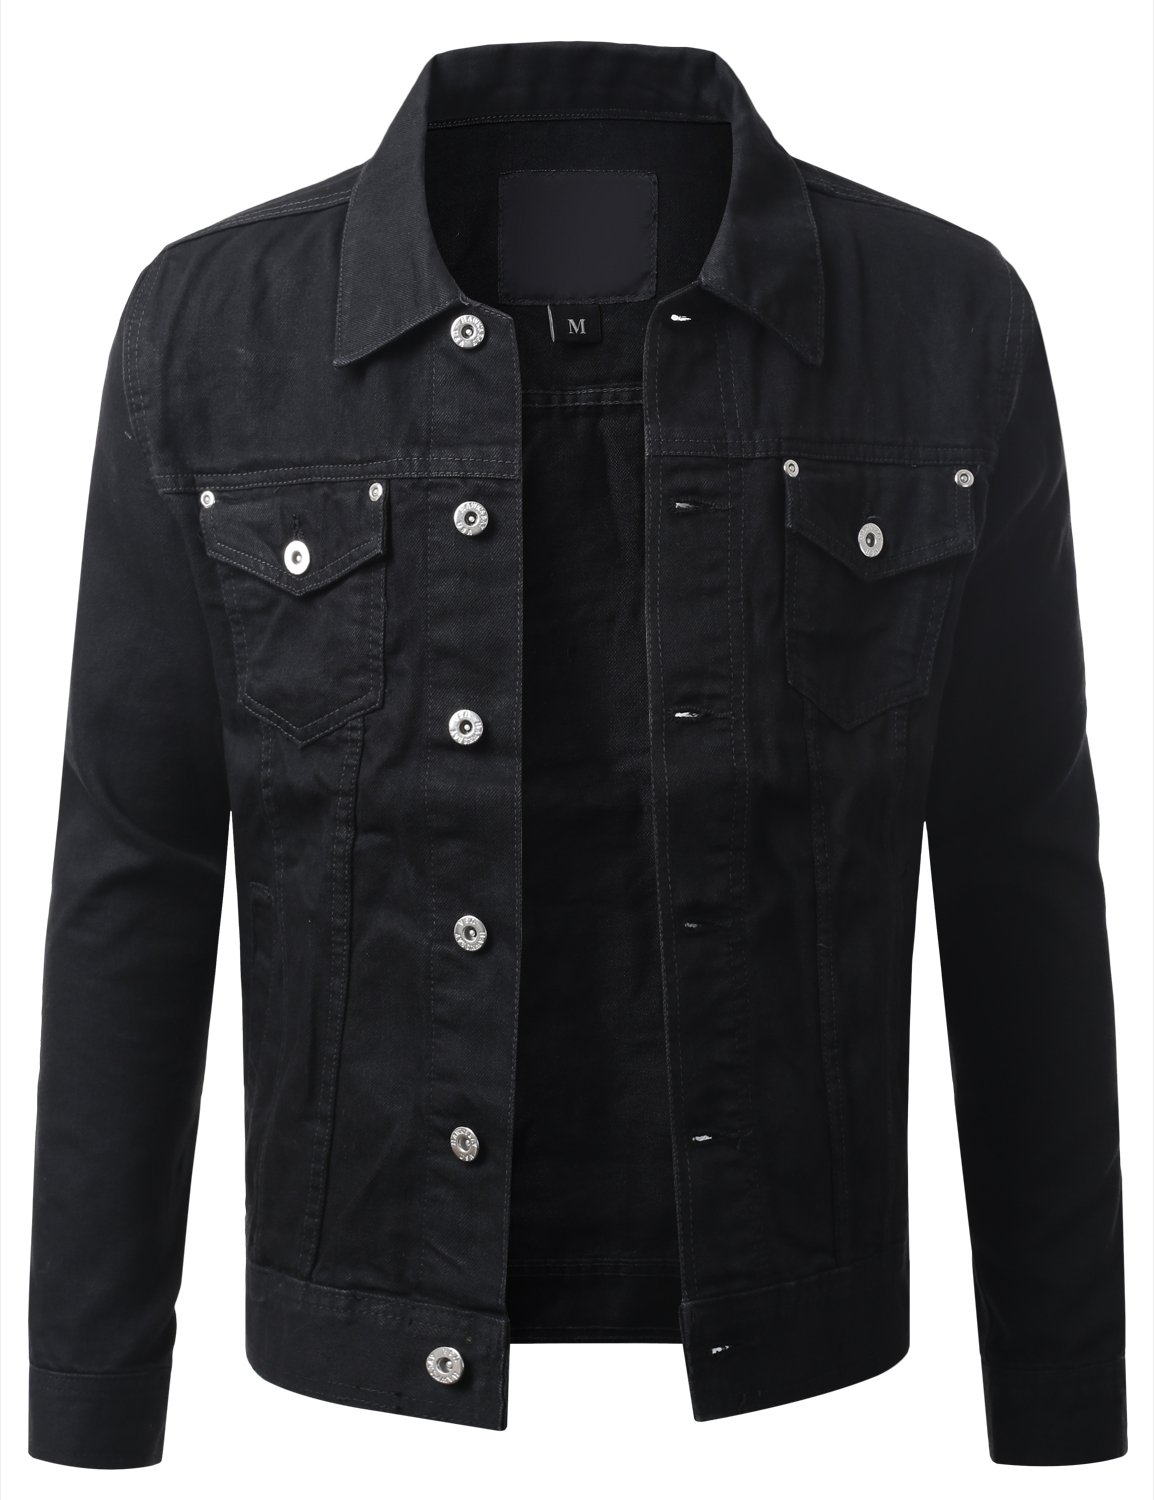 URBANCREWS Mens Hipster Hip Hop Button Down Denim Jacket Black Large by URBANCREWS